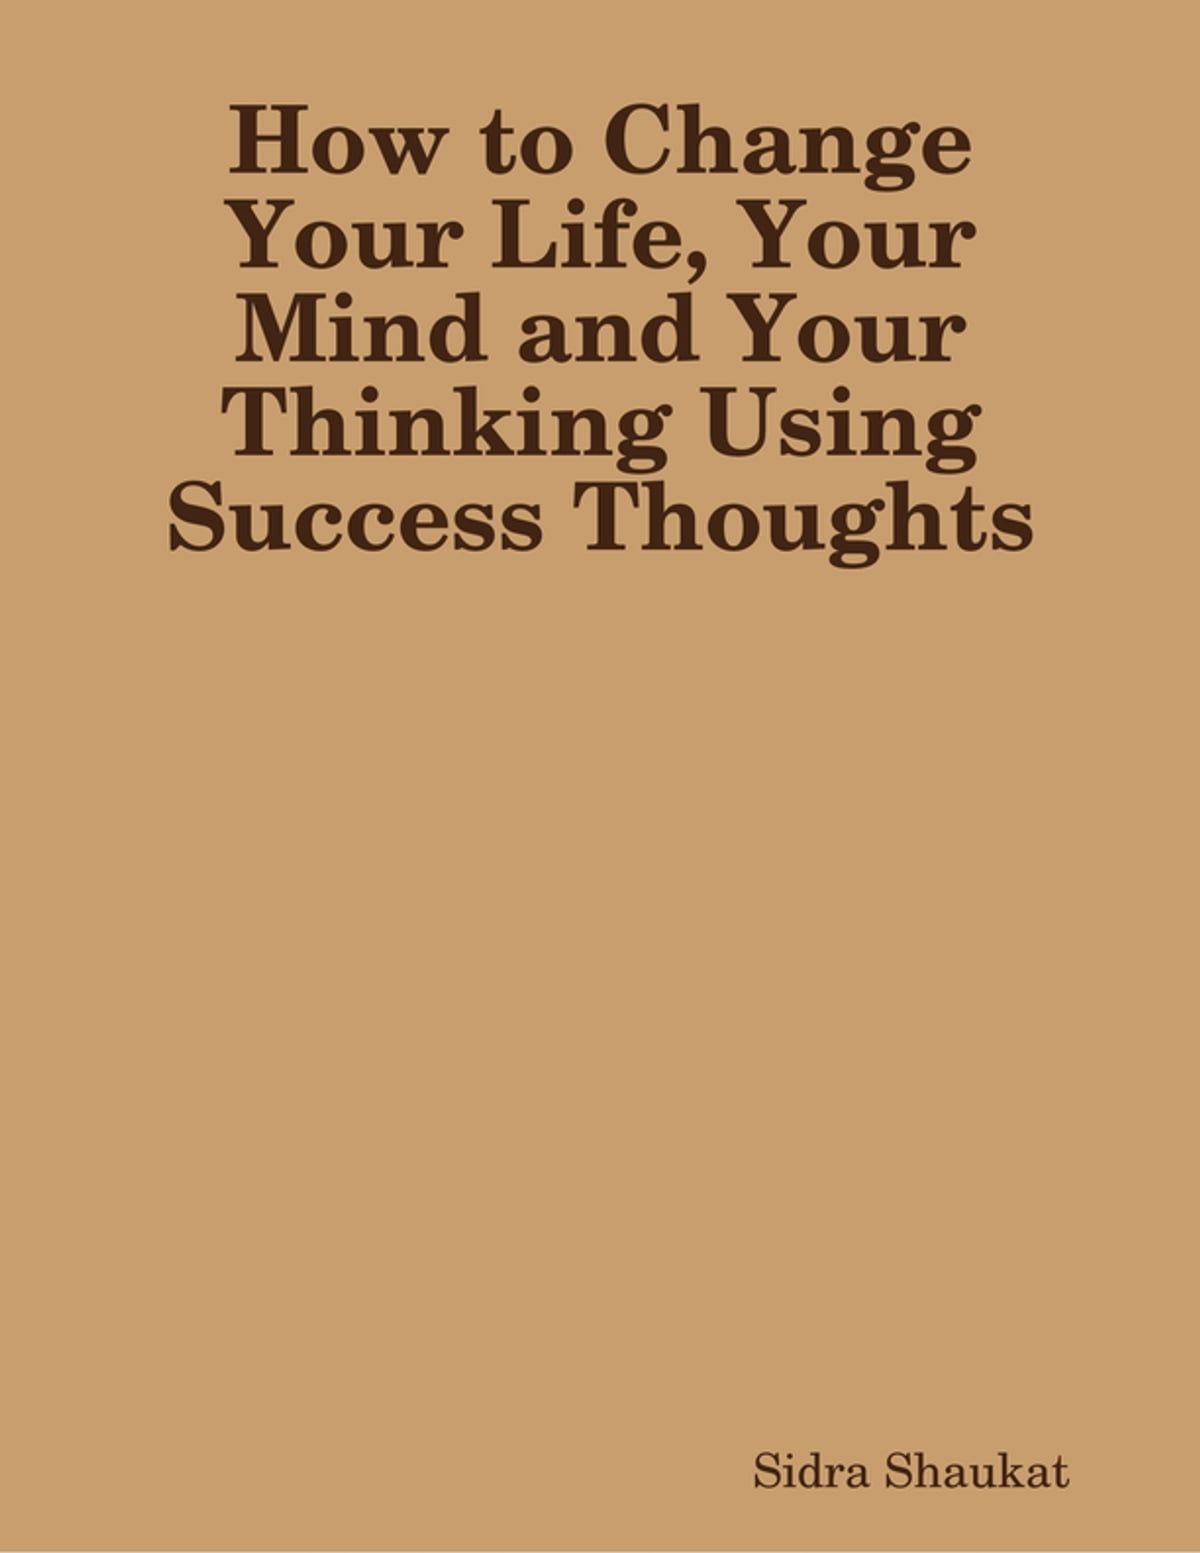 How To Change Your Life Your Mind And Your Thinking Using Success Thoughts Ebook By Sidra Shaukat 9780244006235 Rakuten Kobo United States